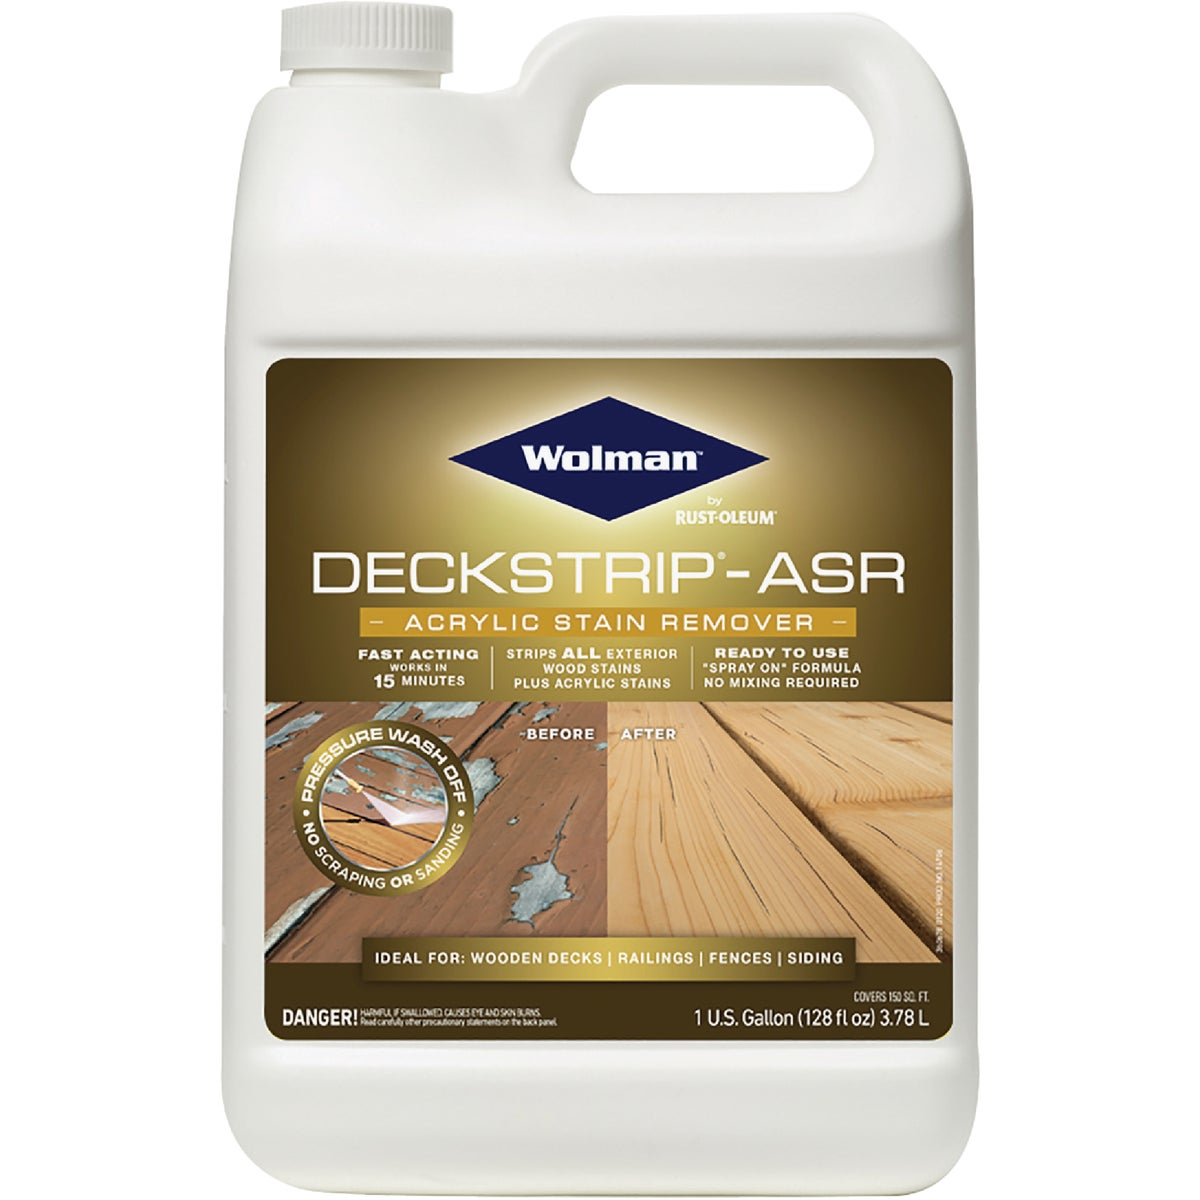 ASR ACRYLC STAIN REMOVER